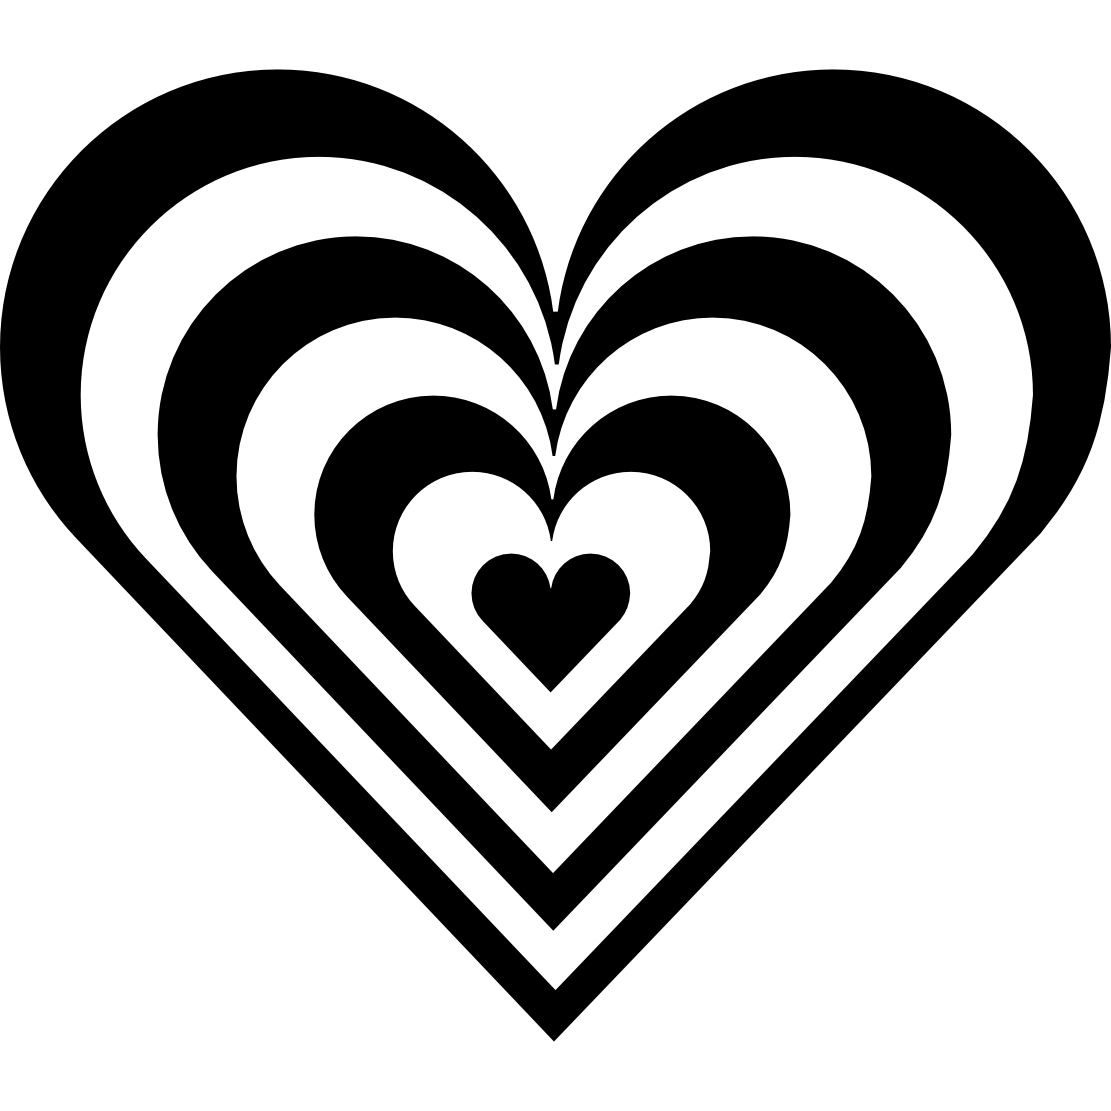 Heart Border Clipart Black And White-heart border clipart black and white-5